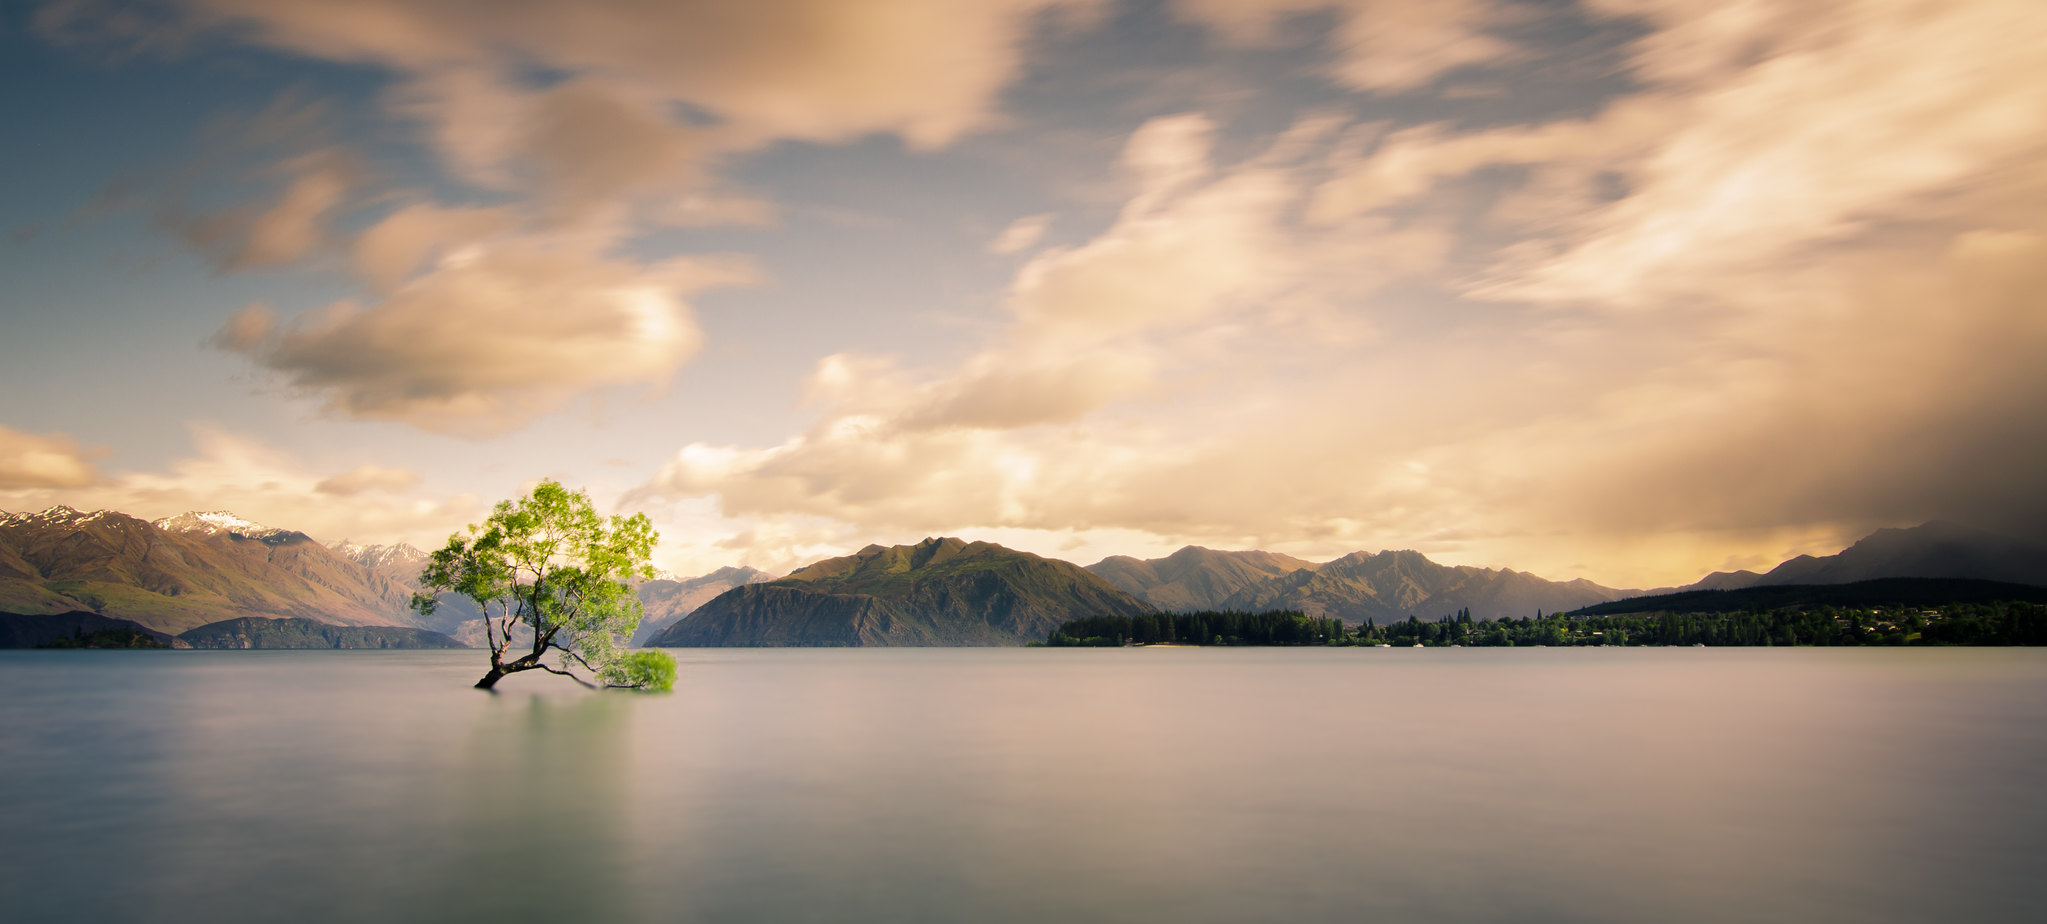 The Lonely Tree | by Kiwi Tom